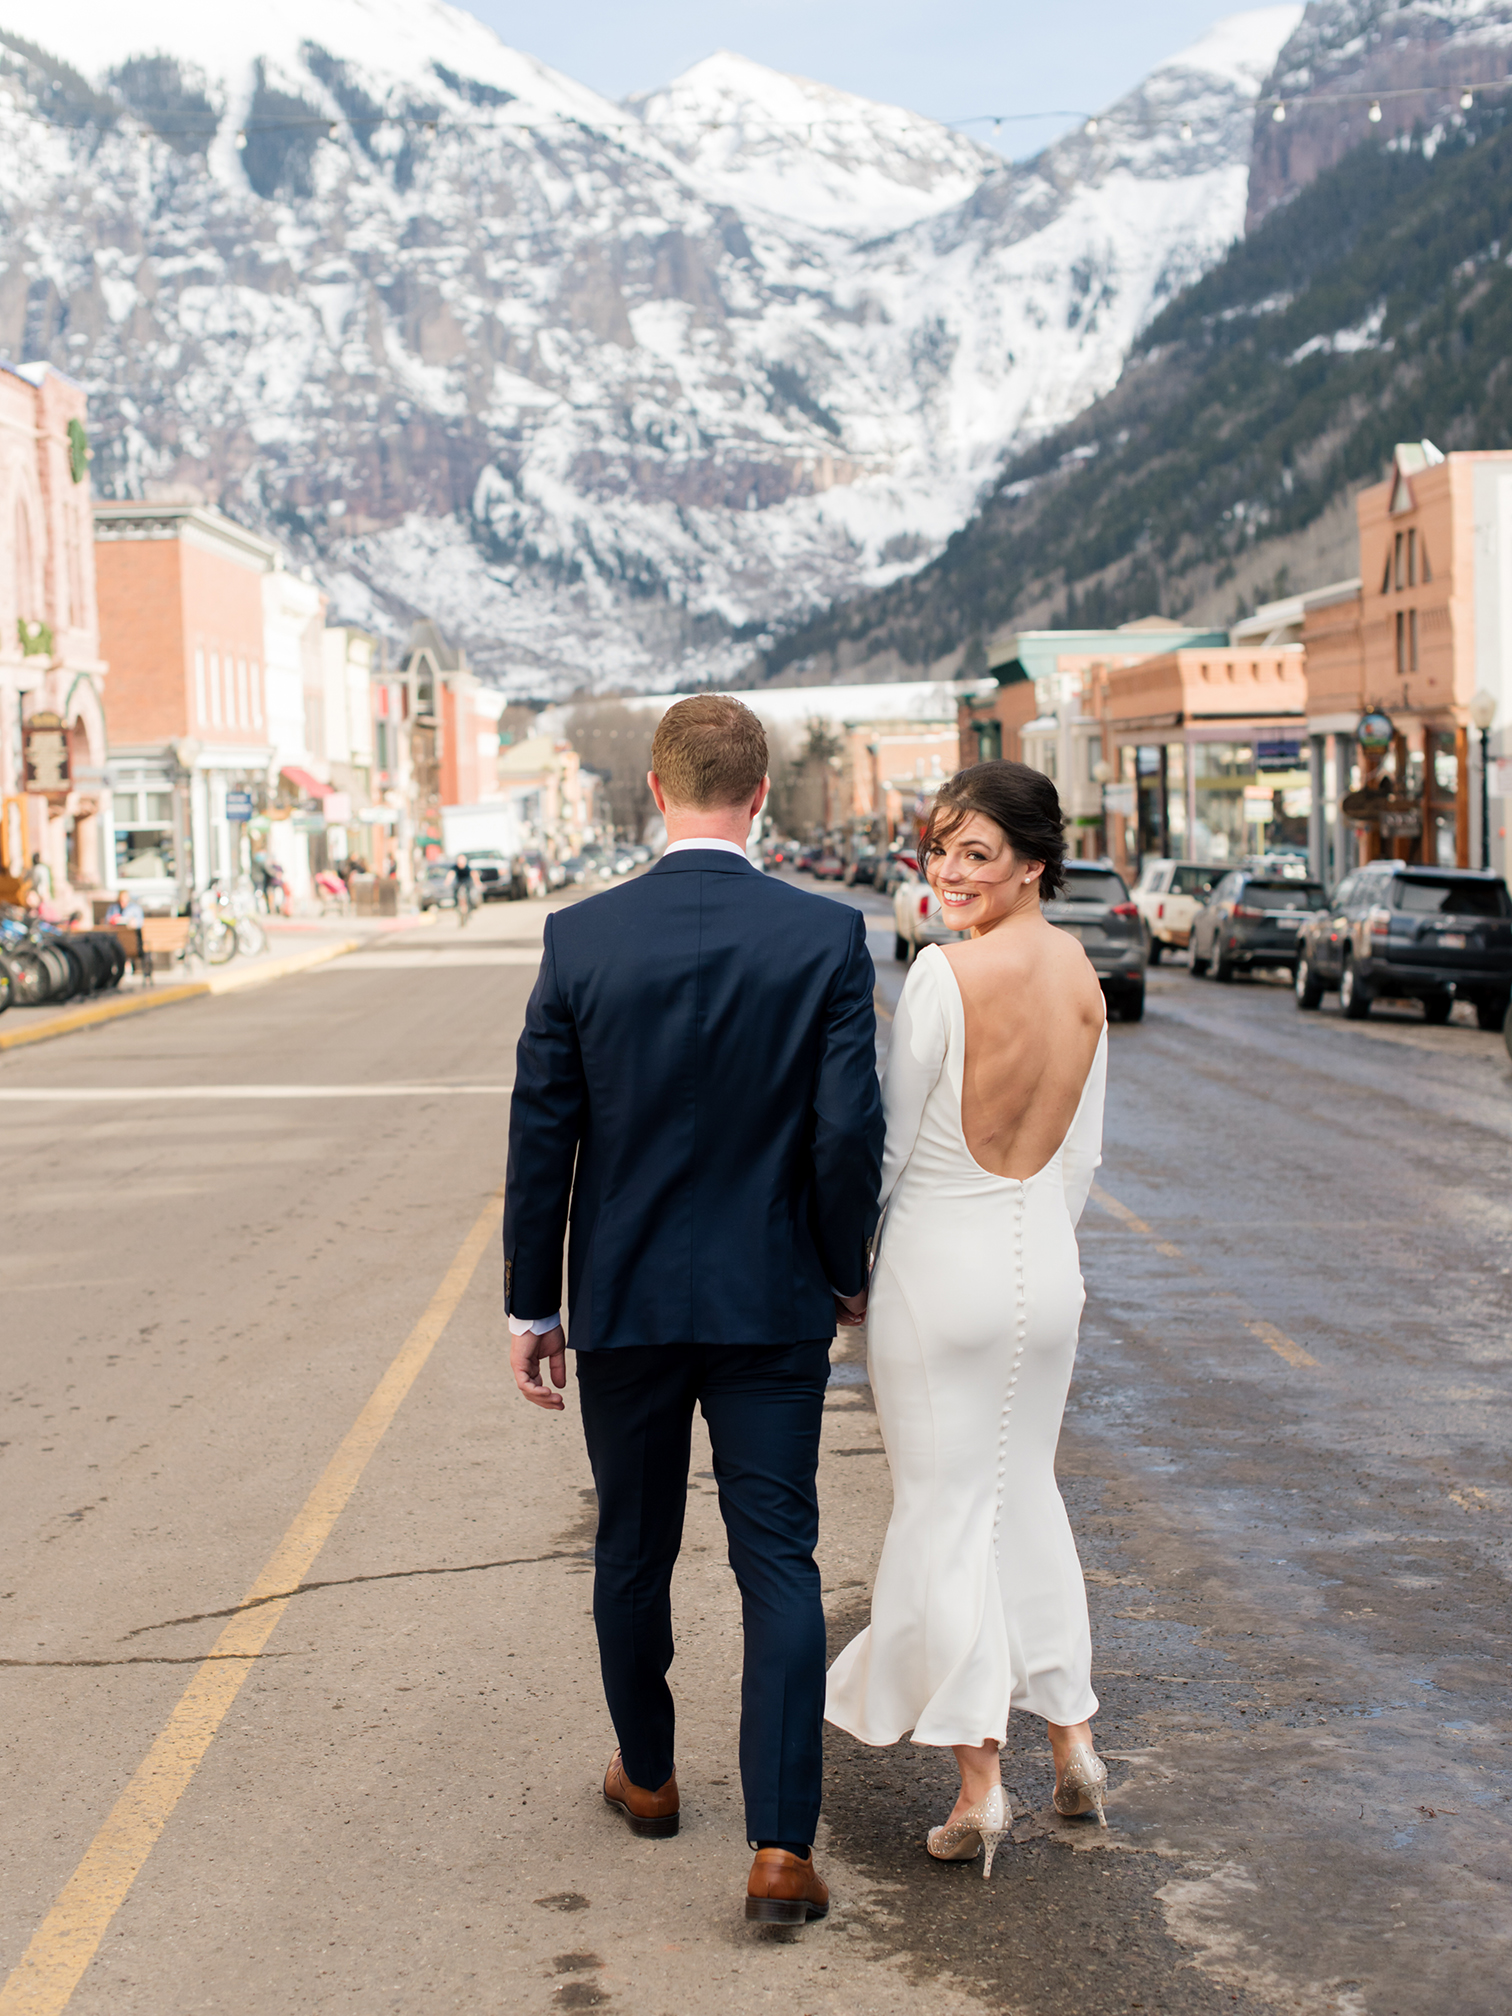 Telluride Wedding, Colorado Destination Wedding, Colorado Photographer, Colorado Wedding Photography, Bride Smiling